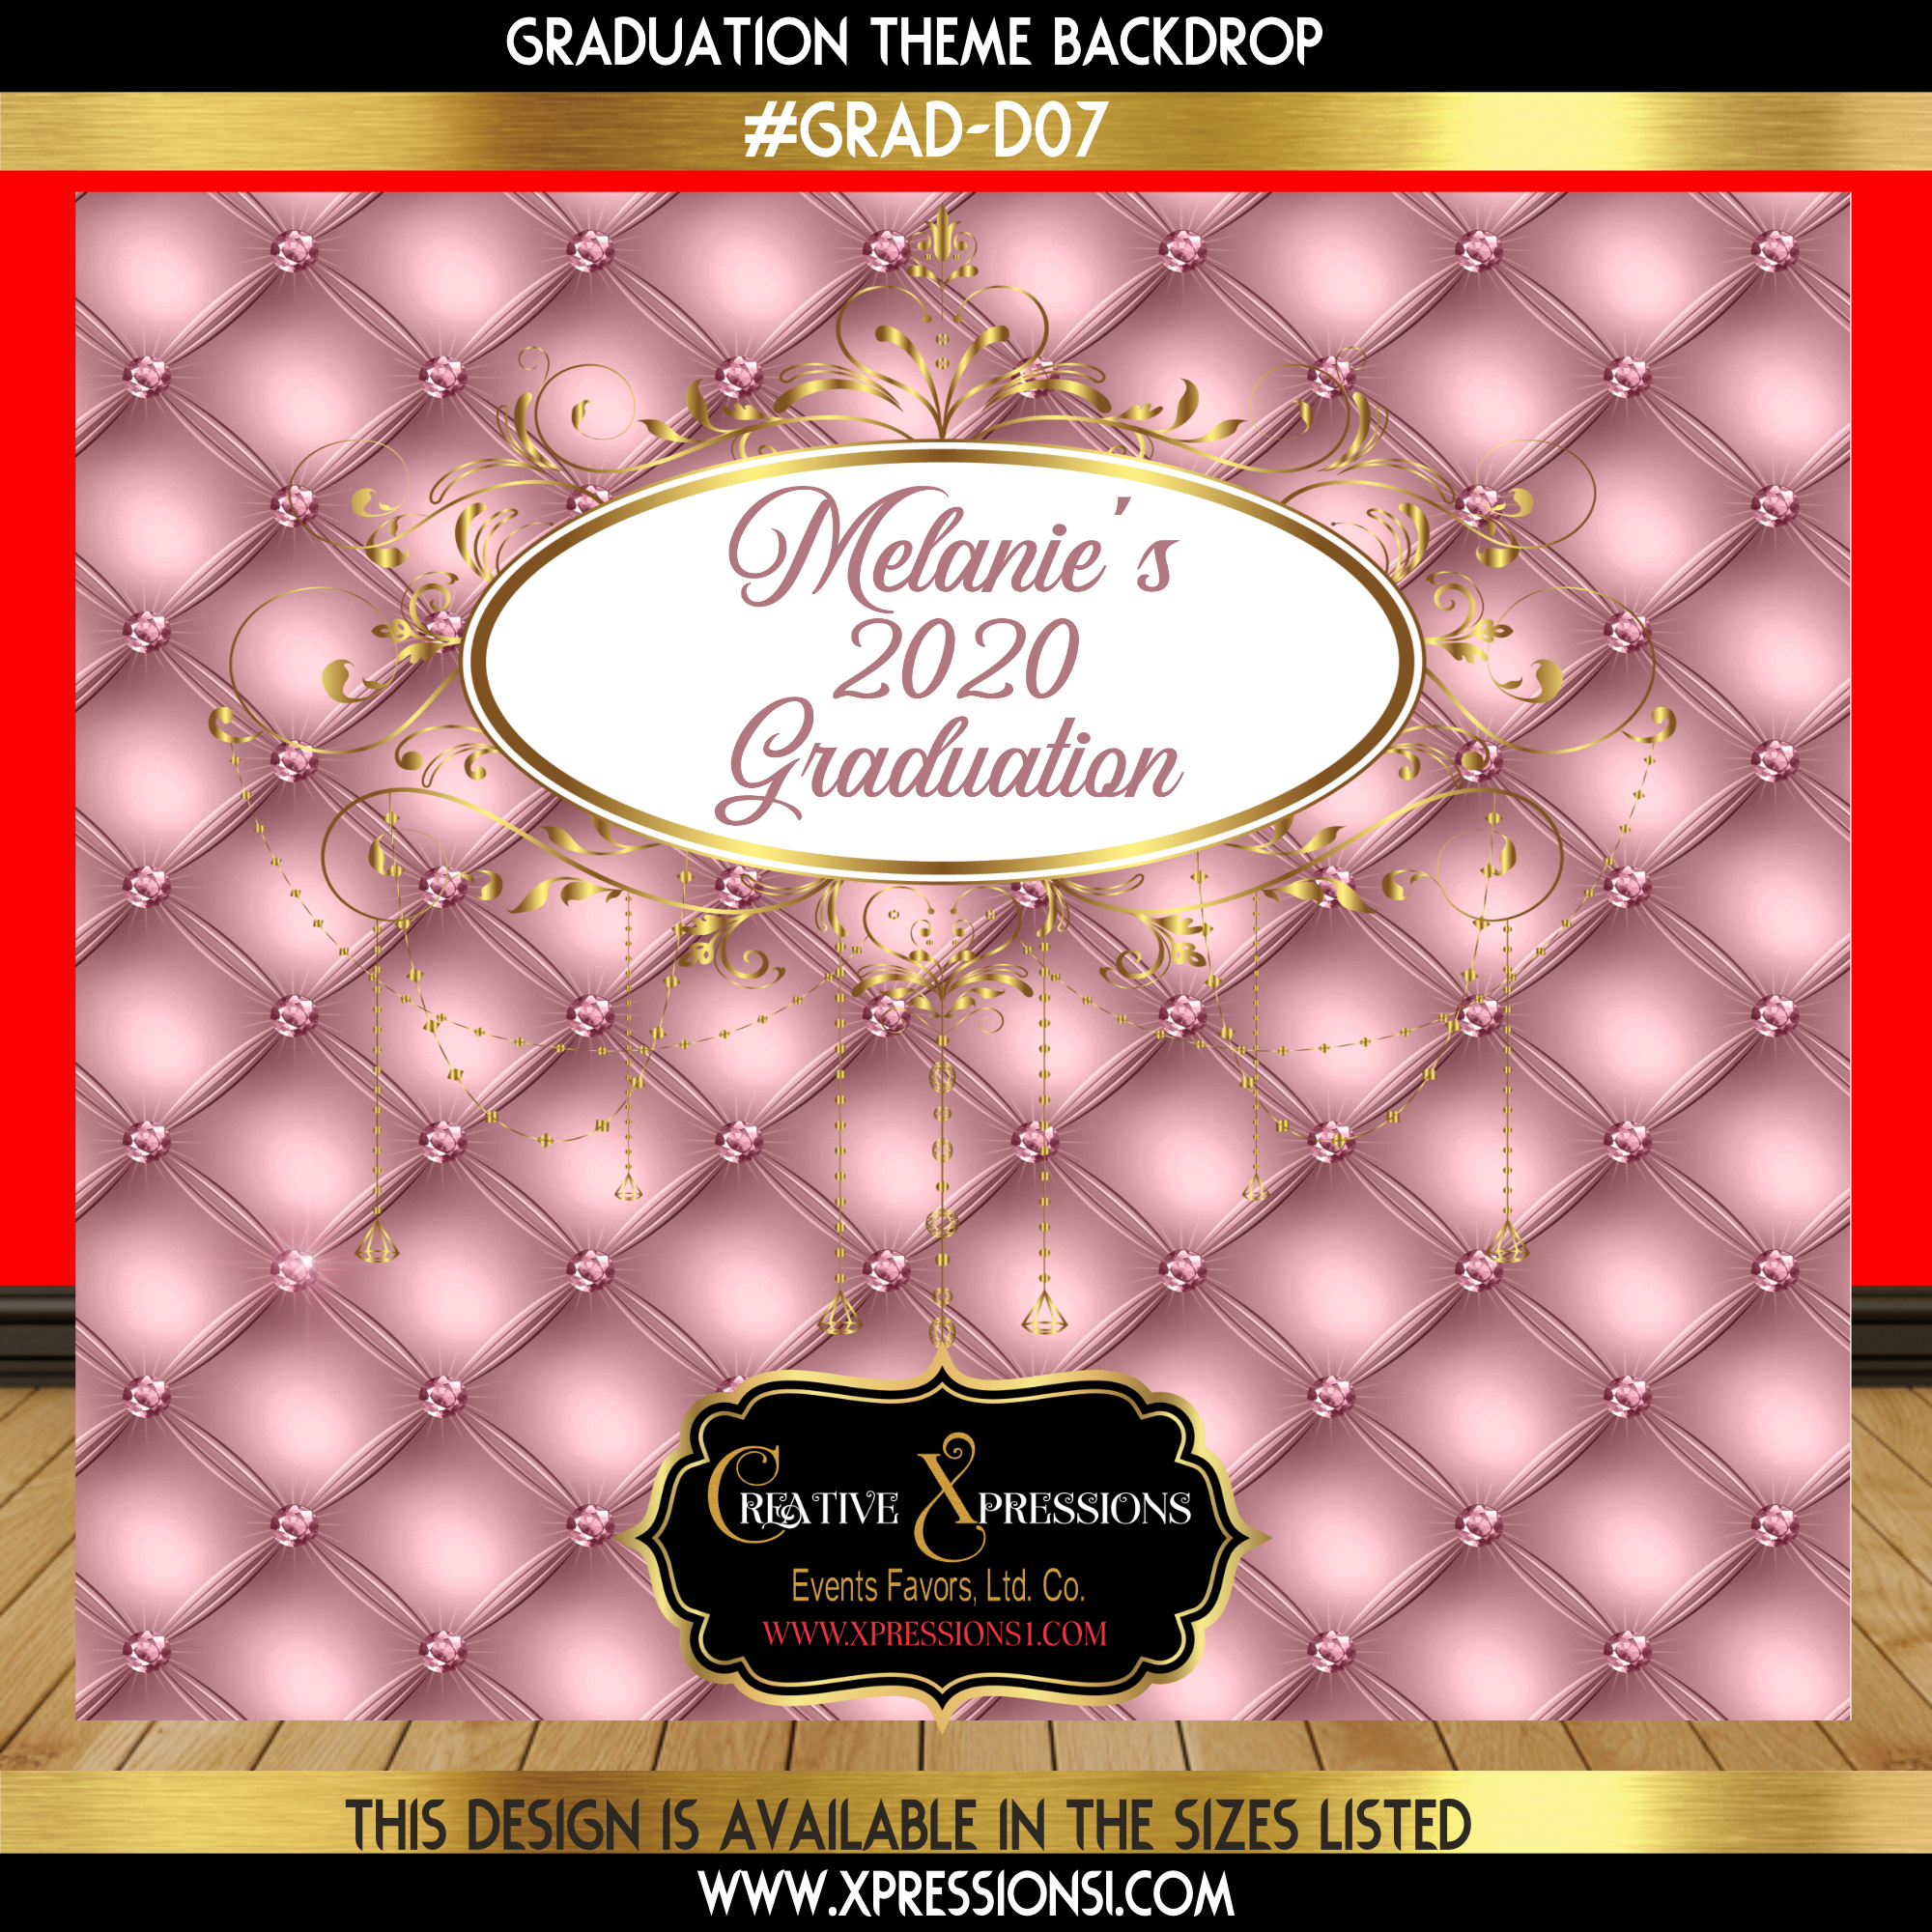 Button Tuft Graduation Backdrop